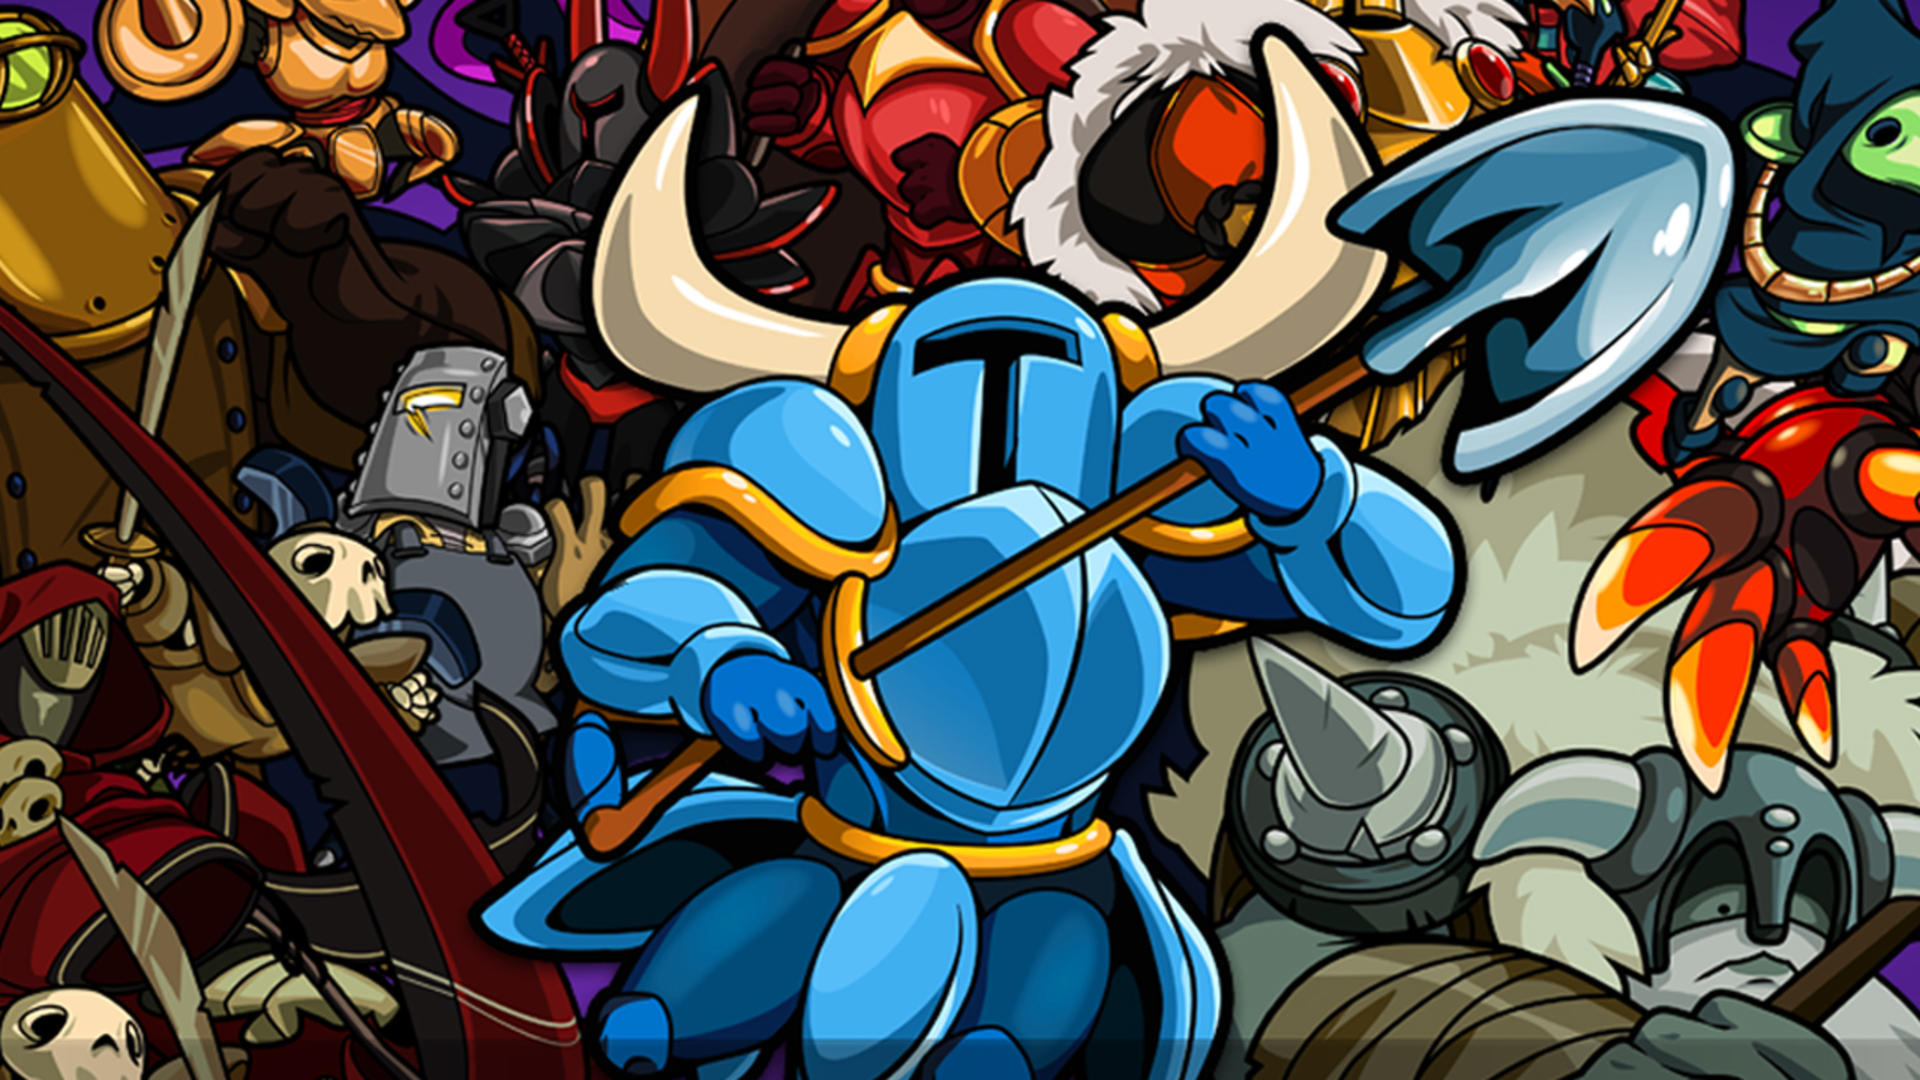 Shovel Knight creators talk Kickstarter, new expansions and how  Switch accounts for 'about 25%' of total sales screenshot